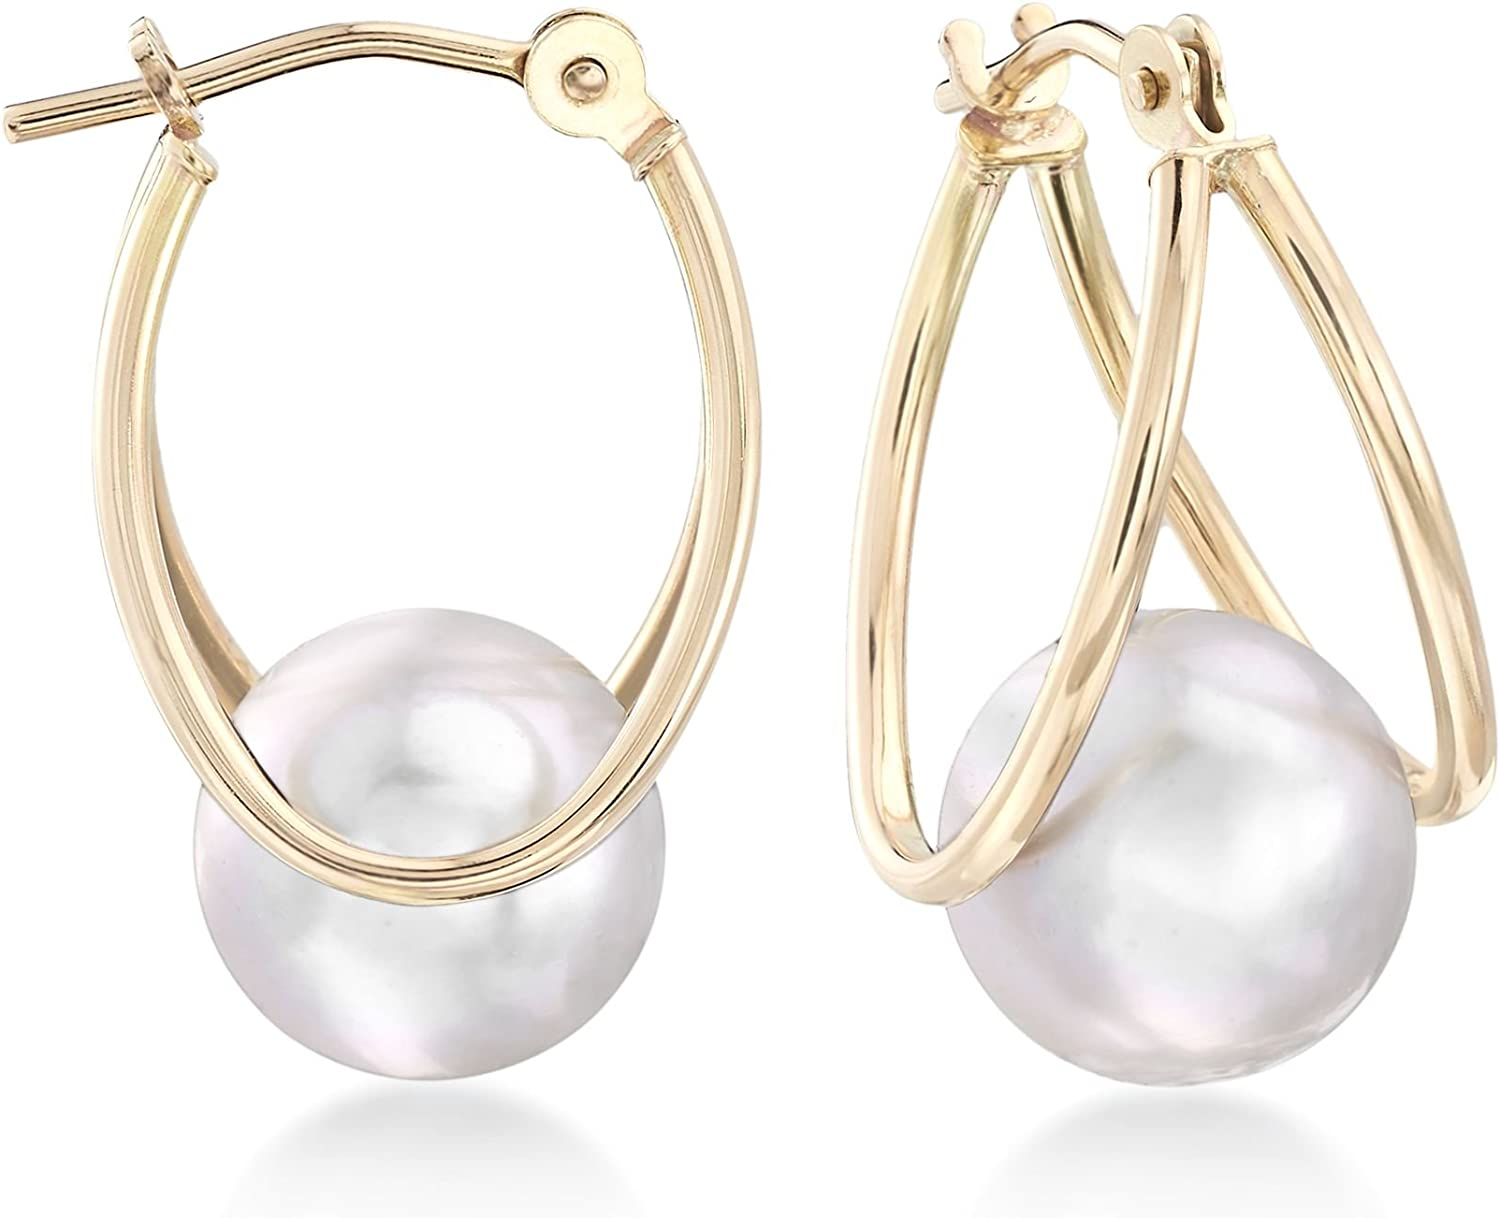 Ross-Simons 8-9mm Gray Cultured Pearl Double-Hoop Earrings in 14kt Yellow Gold